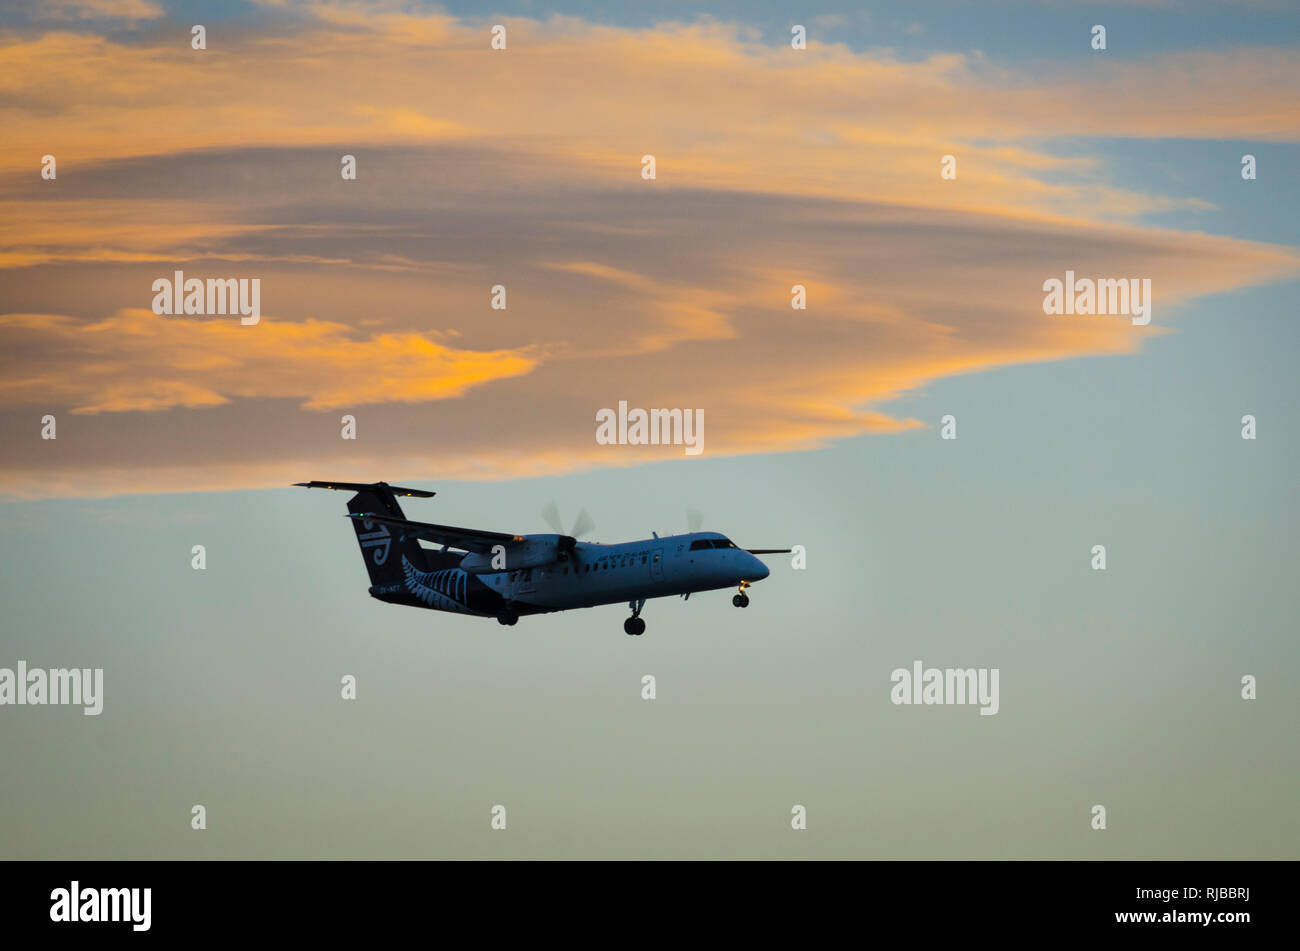 ATR 72 airoplane approaching to land at Wellington airport, New Zealand - Stock Image